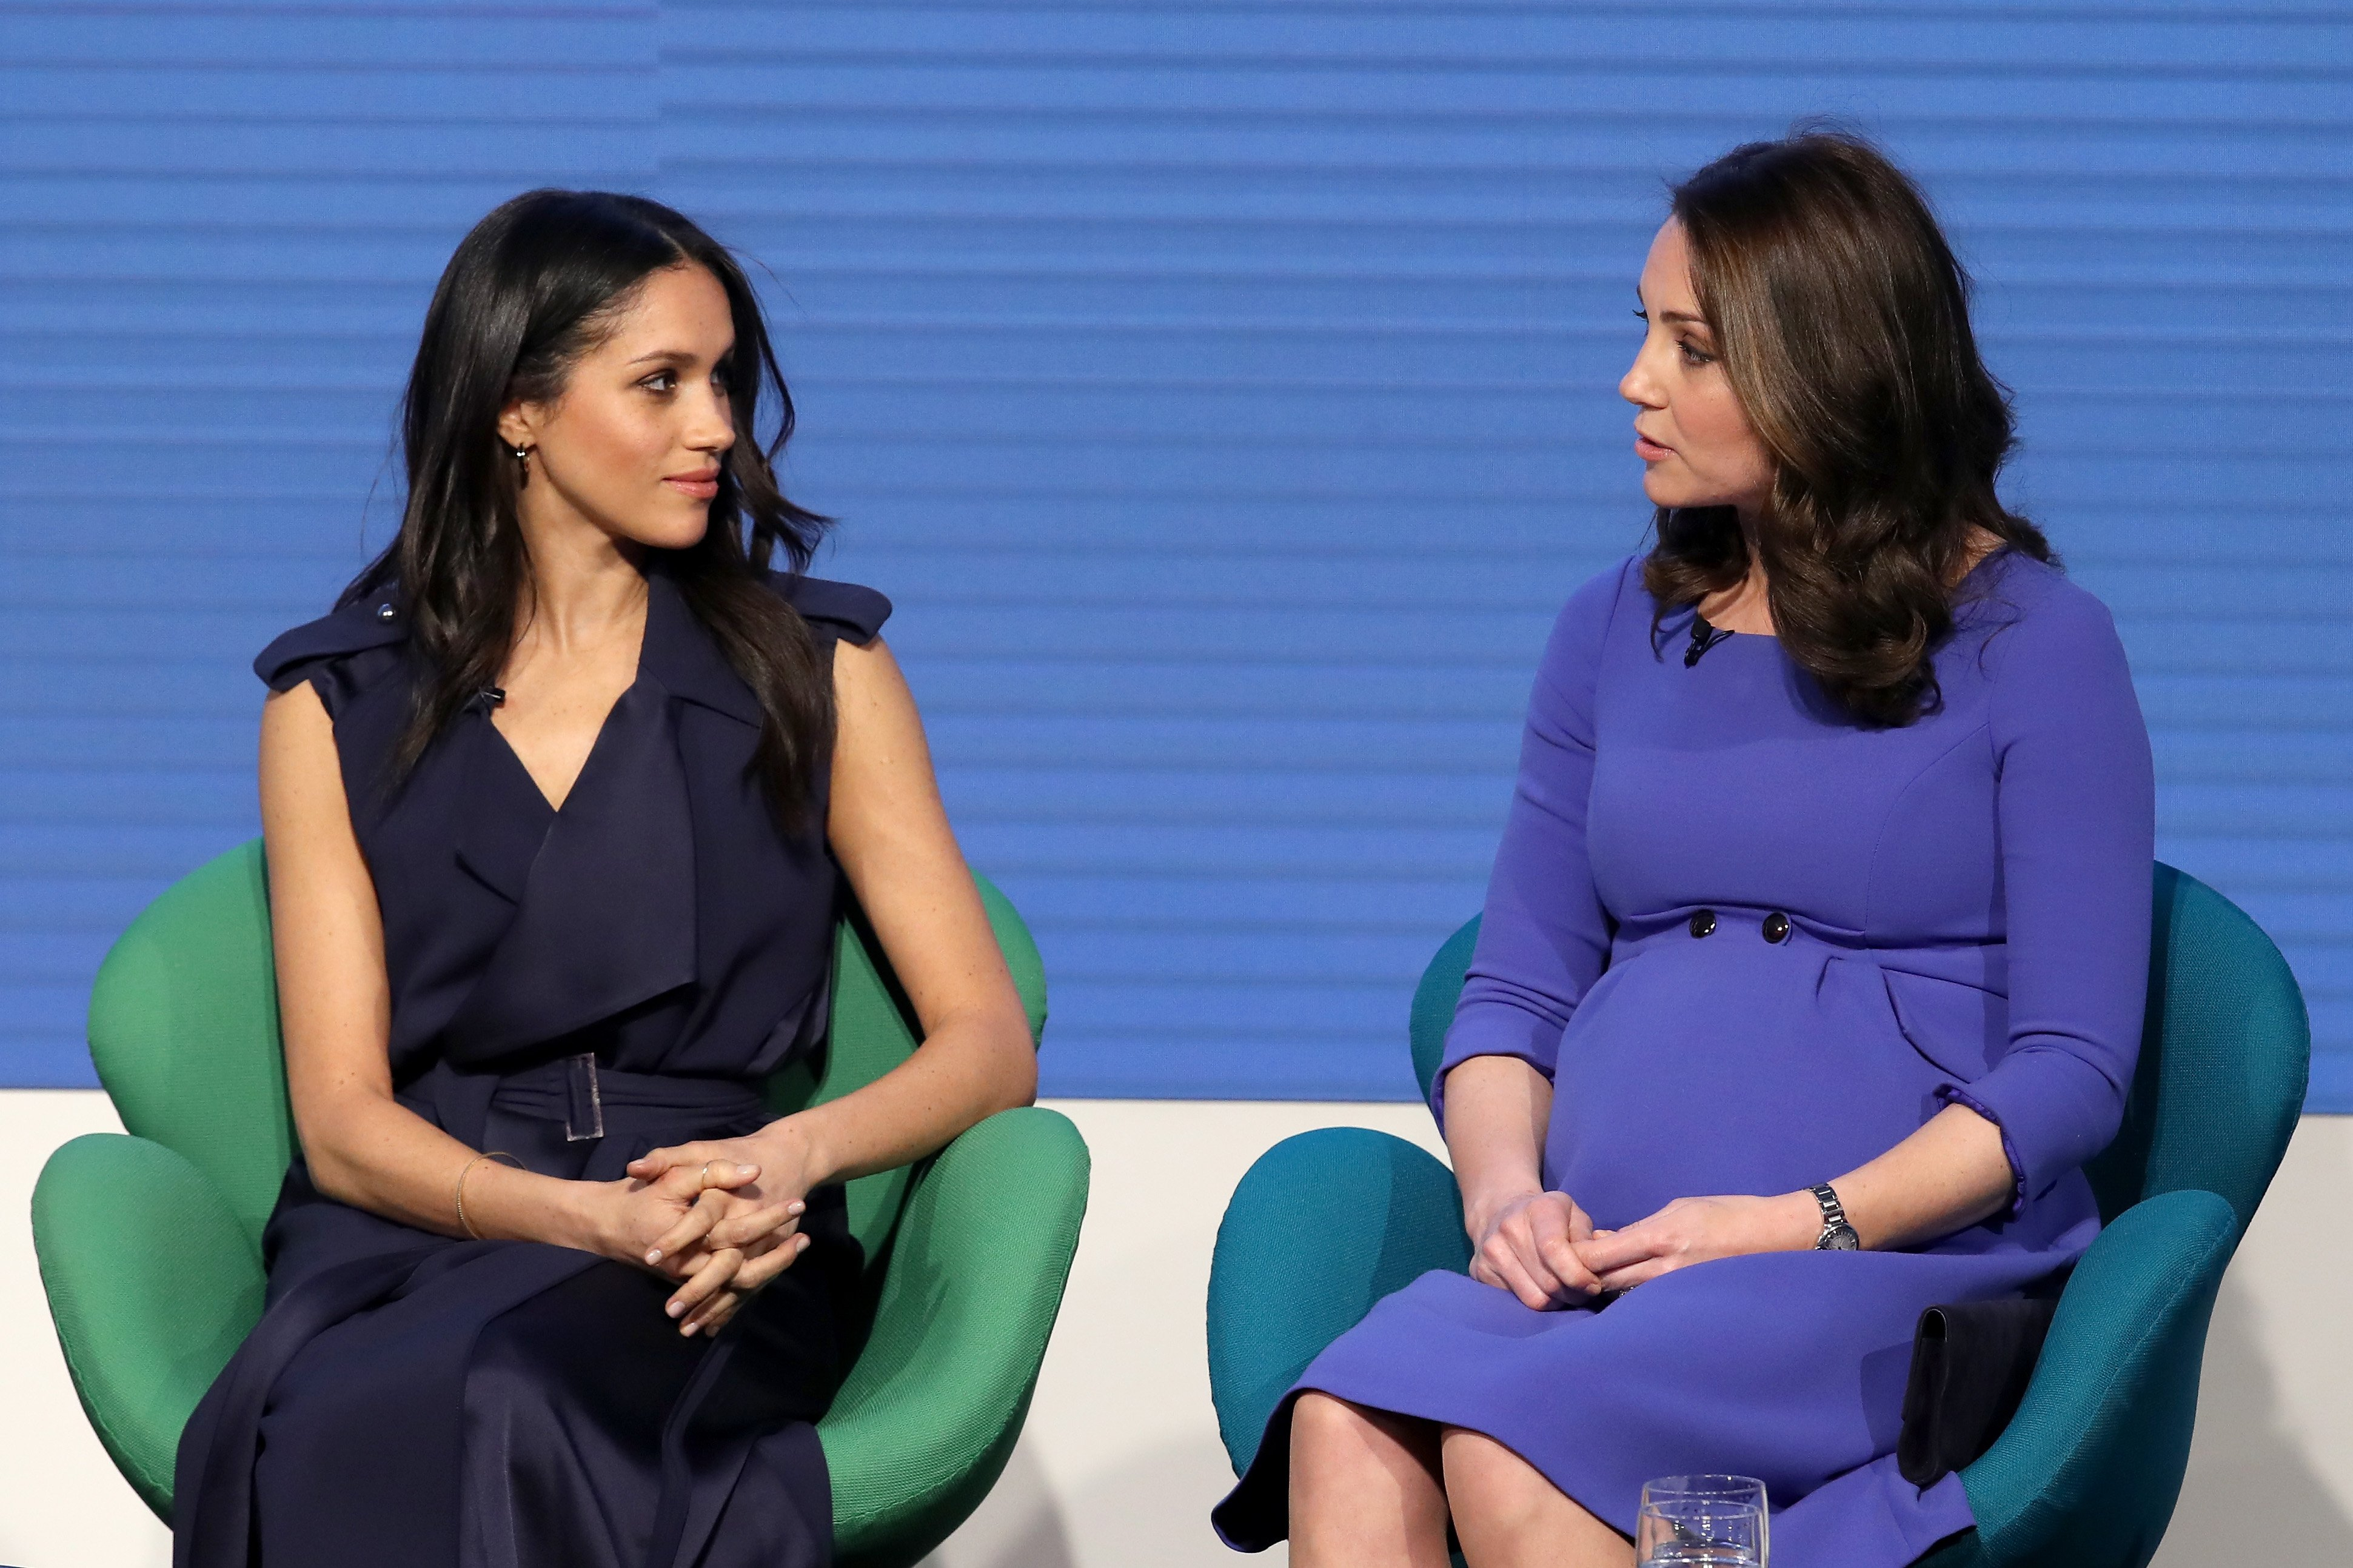 Meghan Markle and Kate Middleton attend the first annual Royal Foundation Forum held at Aviva on February 28, 2018 in London, England | Photo: Getty Images